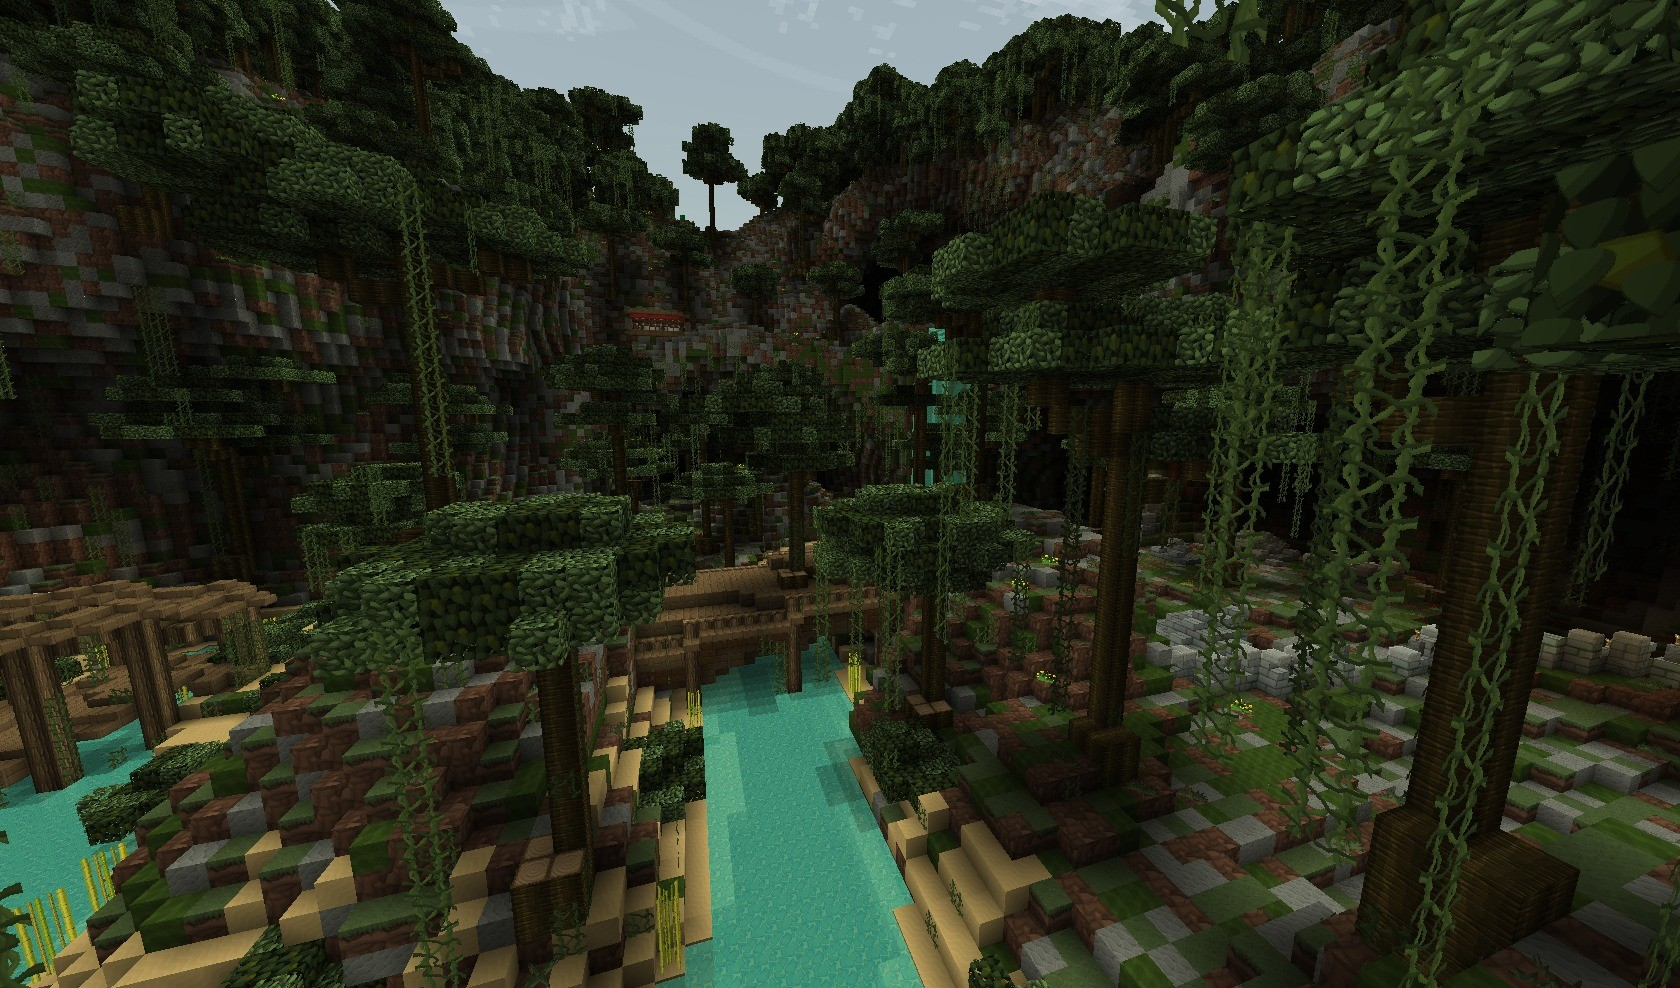 minecraft wallpaper paysage jungle jeux video info. Black Bedroom Furniture Sets. Home Design Ideas